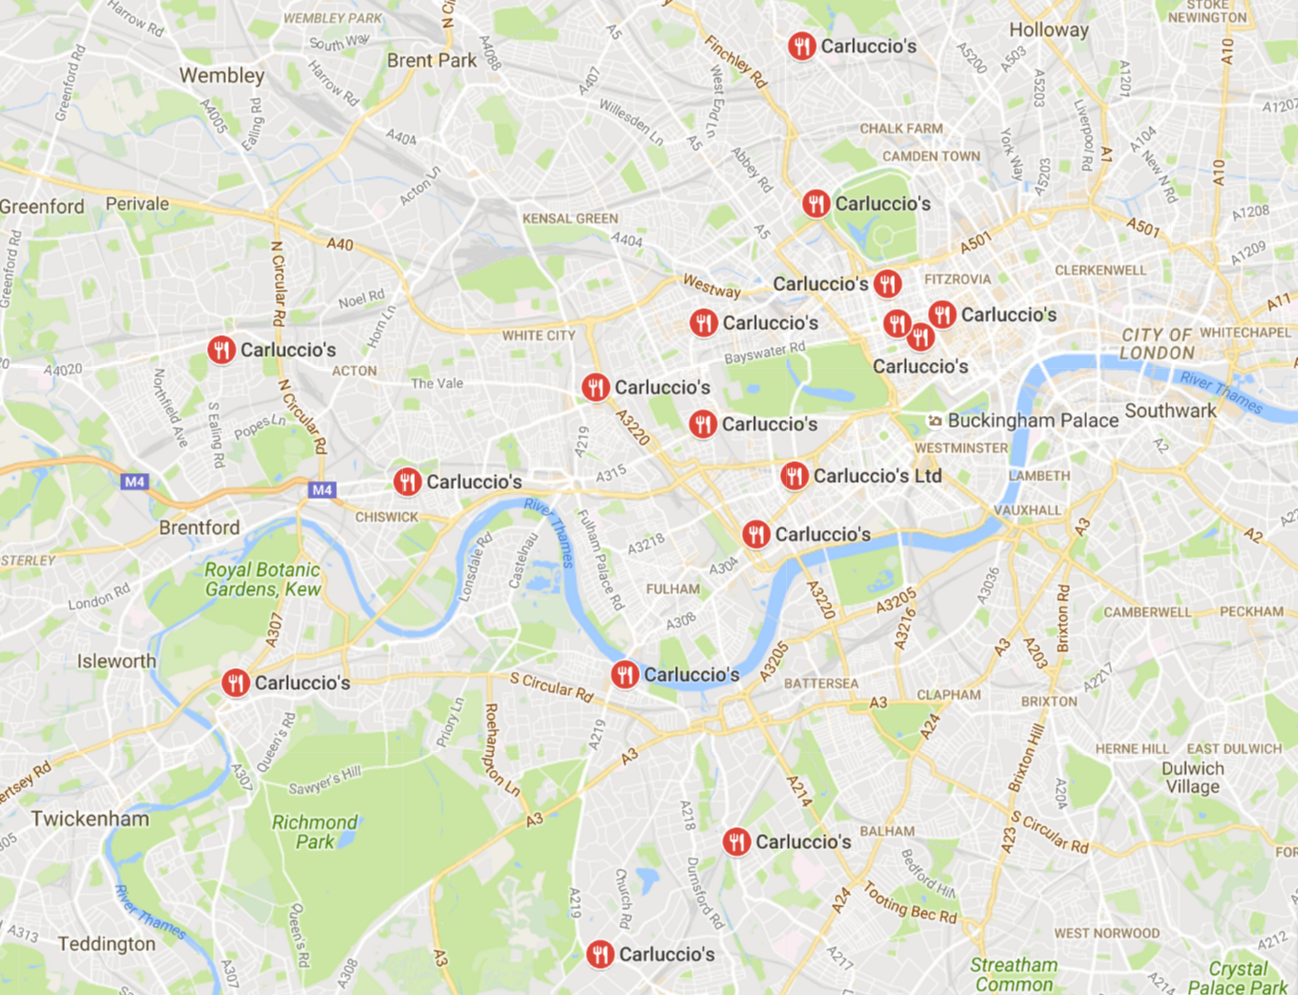 Some of Carluccio's many locations